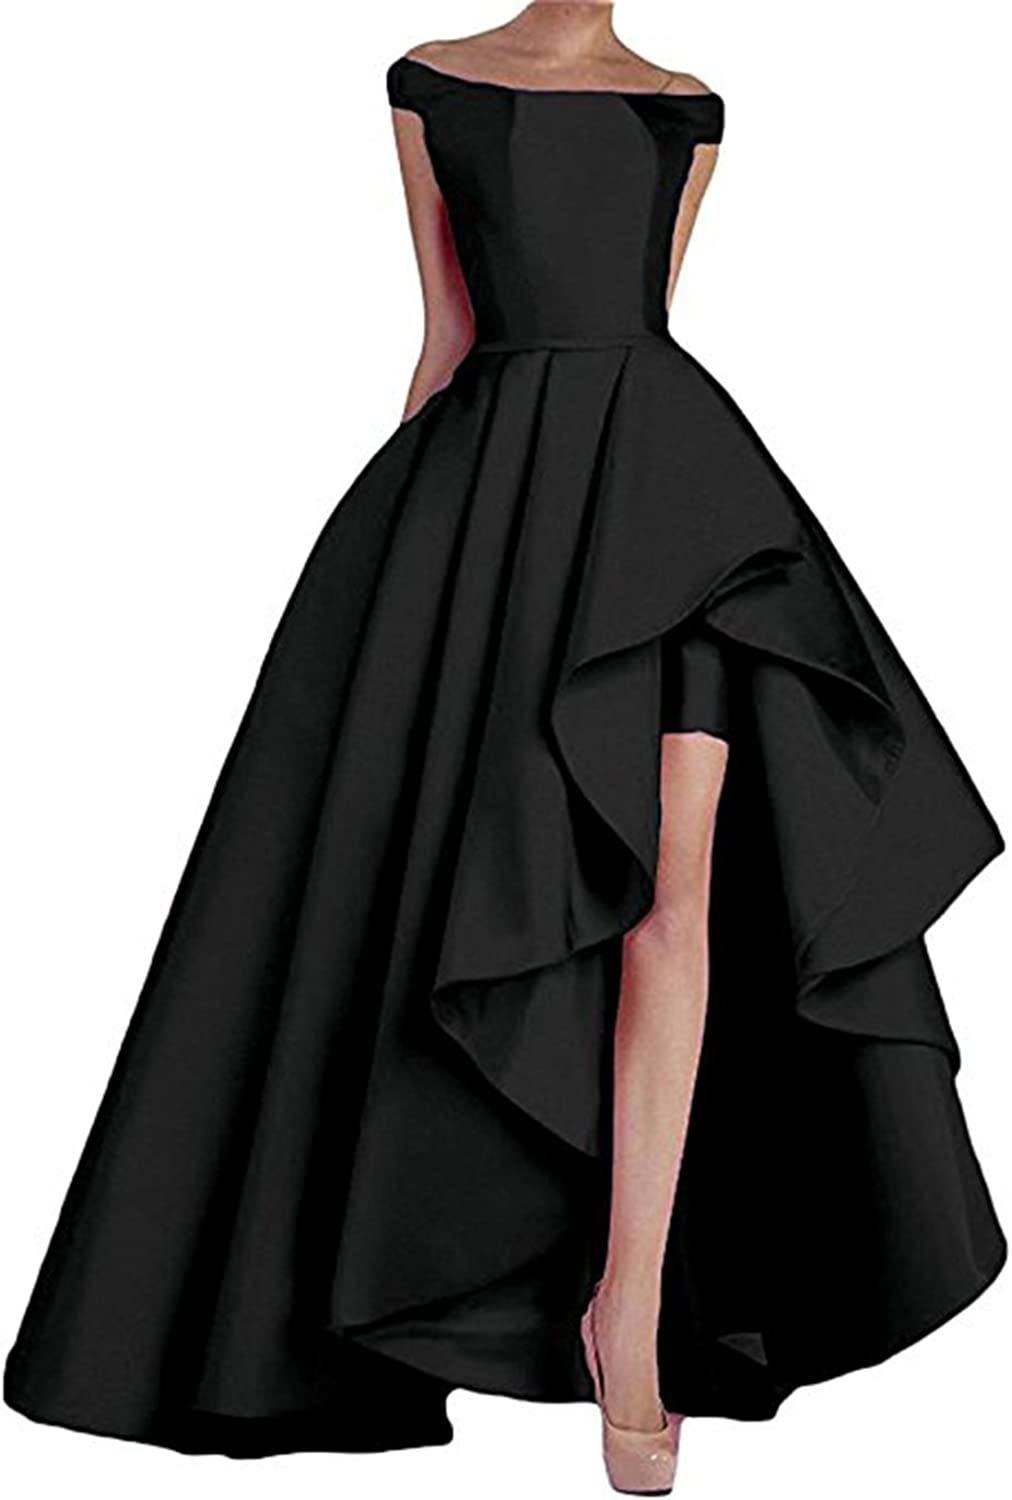 Alilith.Z Sexy Off The Shoulder A Line High Low Prom Dresses Long Evening Party Formal Gowns for Women